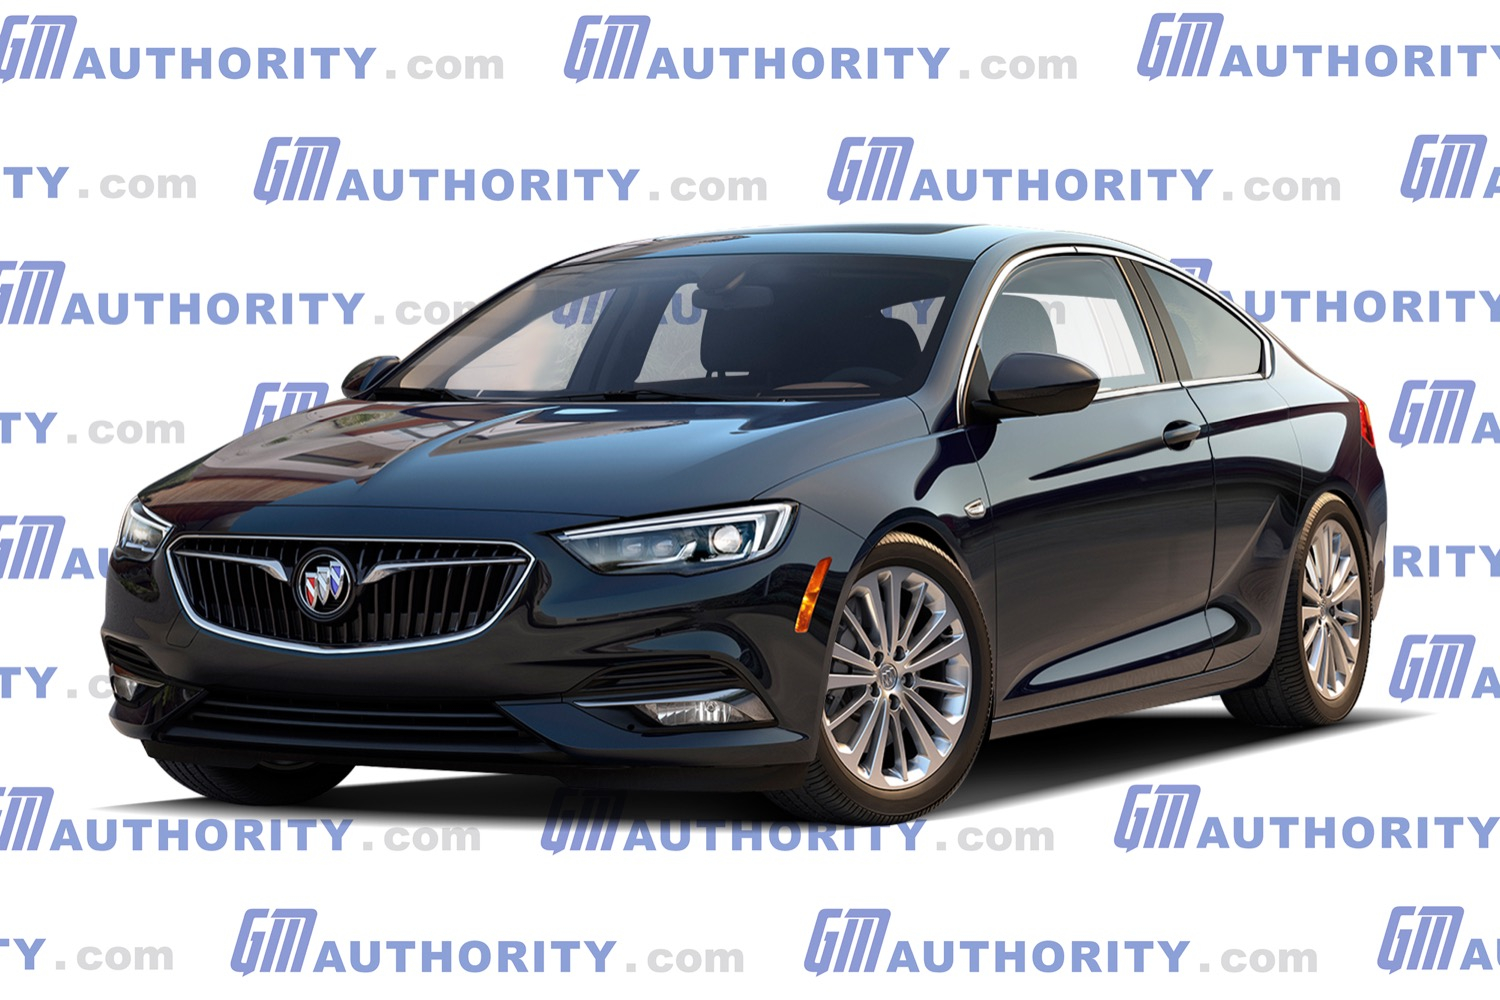 New Renderings Show Hypothetical Buick Regal Coupe | Gm 2022 Buick Regal Pictures, Price, Reviews